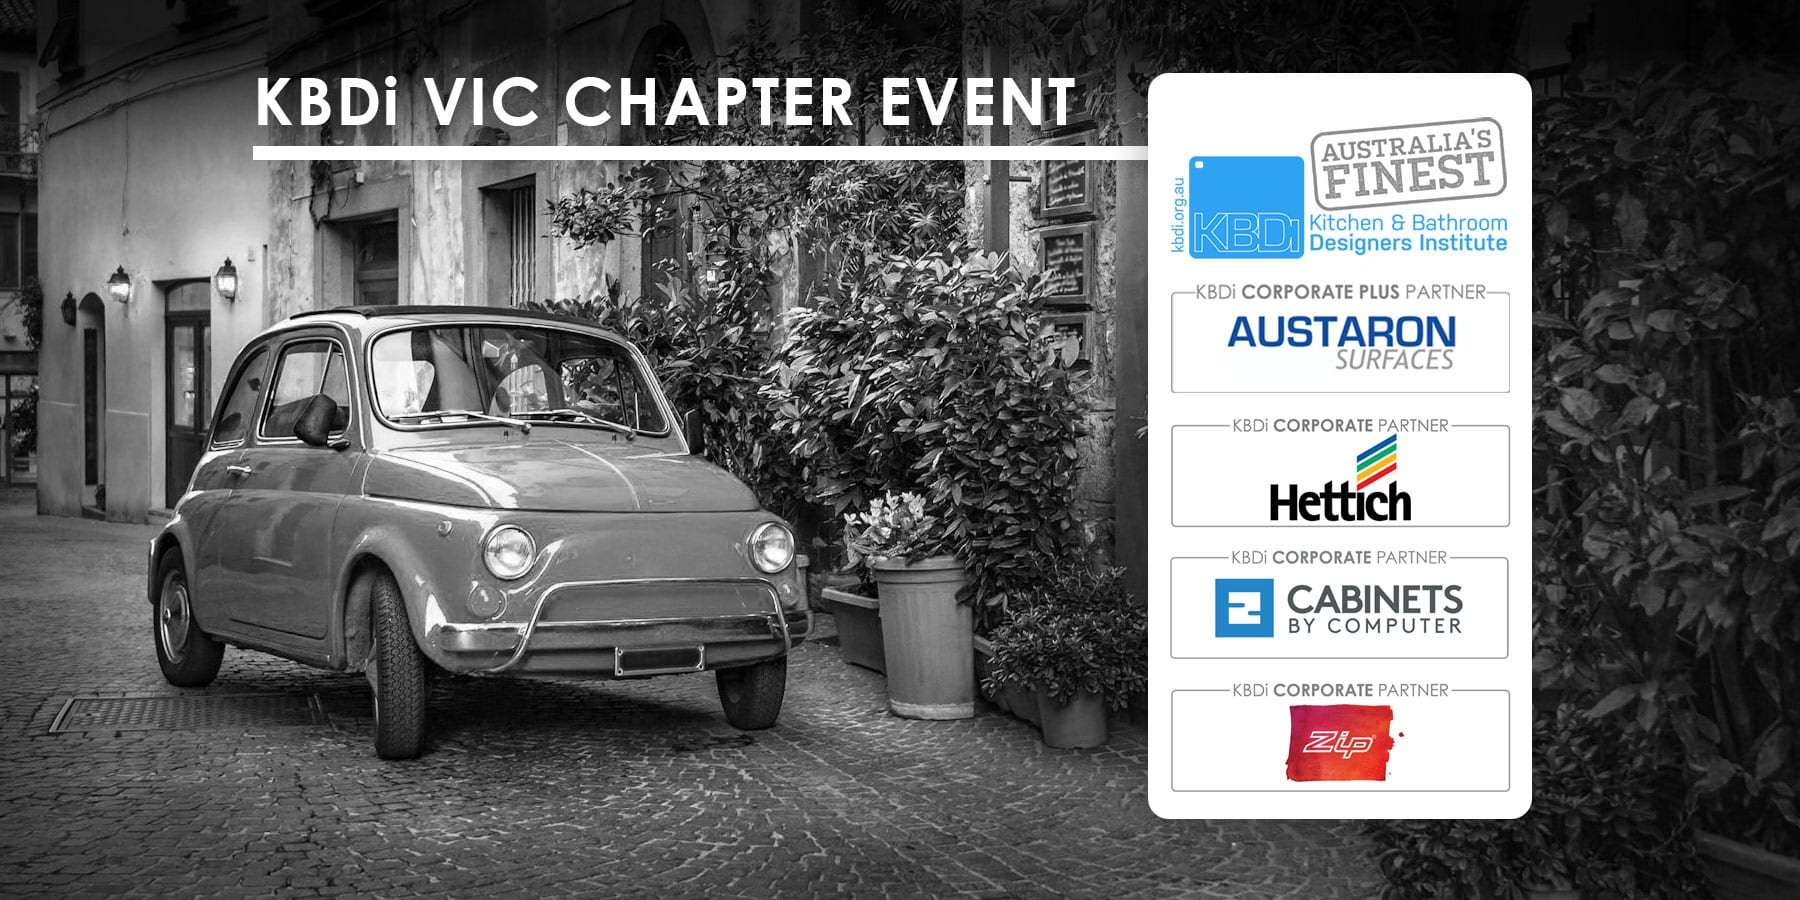 KBDi VIC Chapter Event